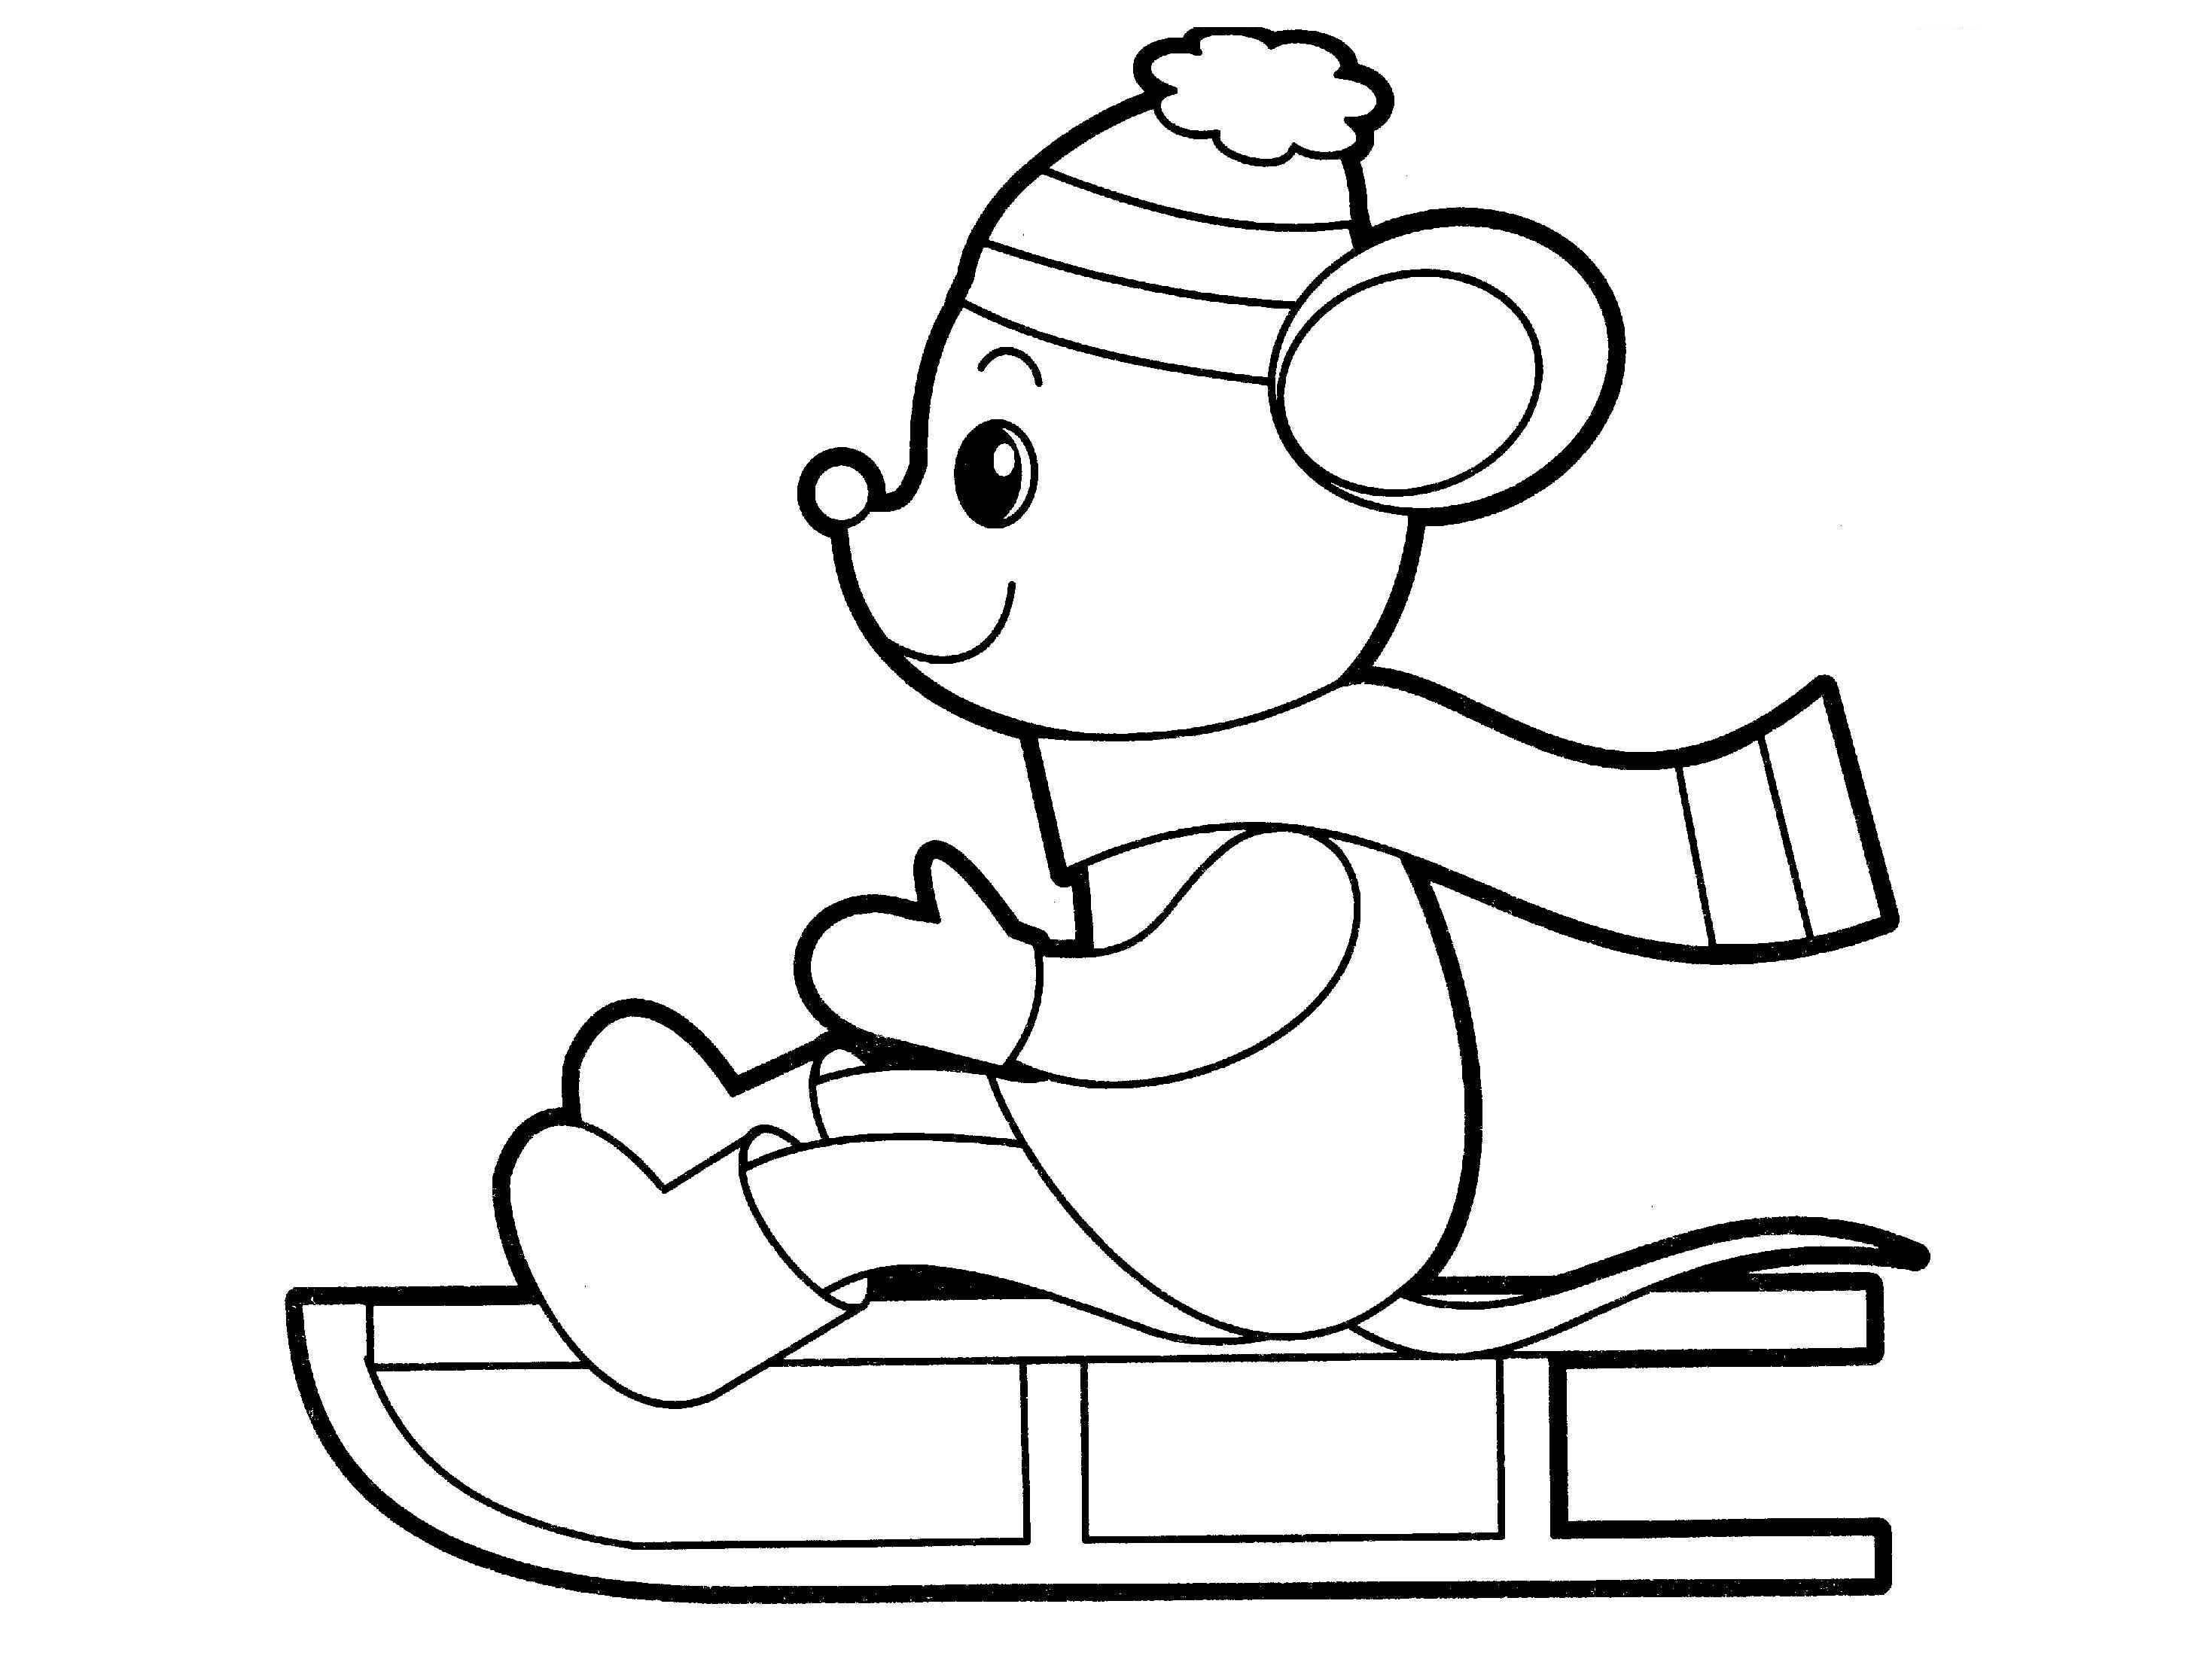 arthur thanksgiving coloring pages - photo#17